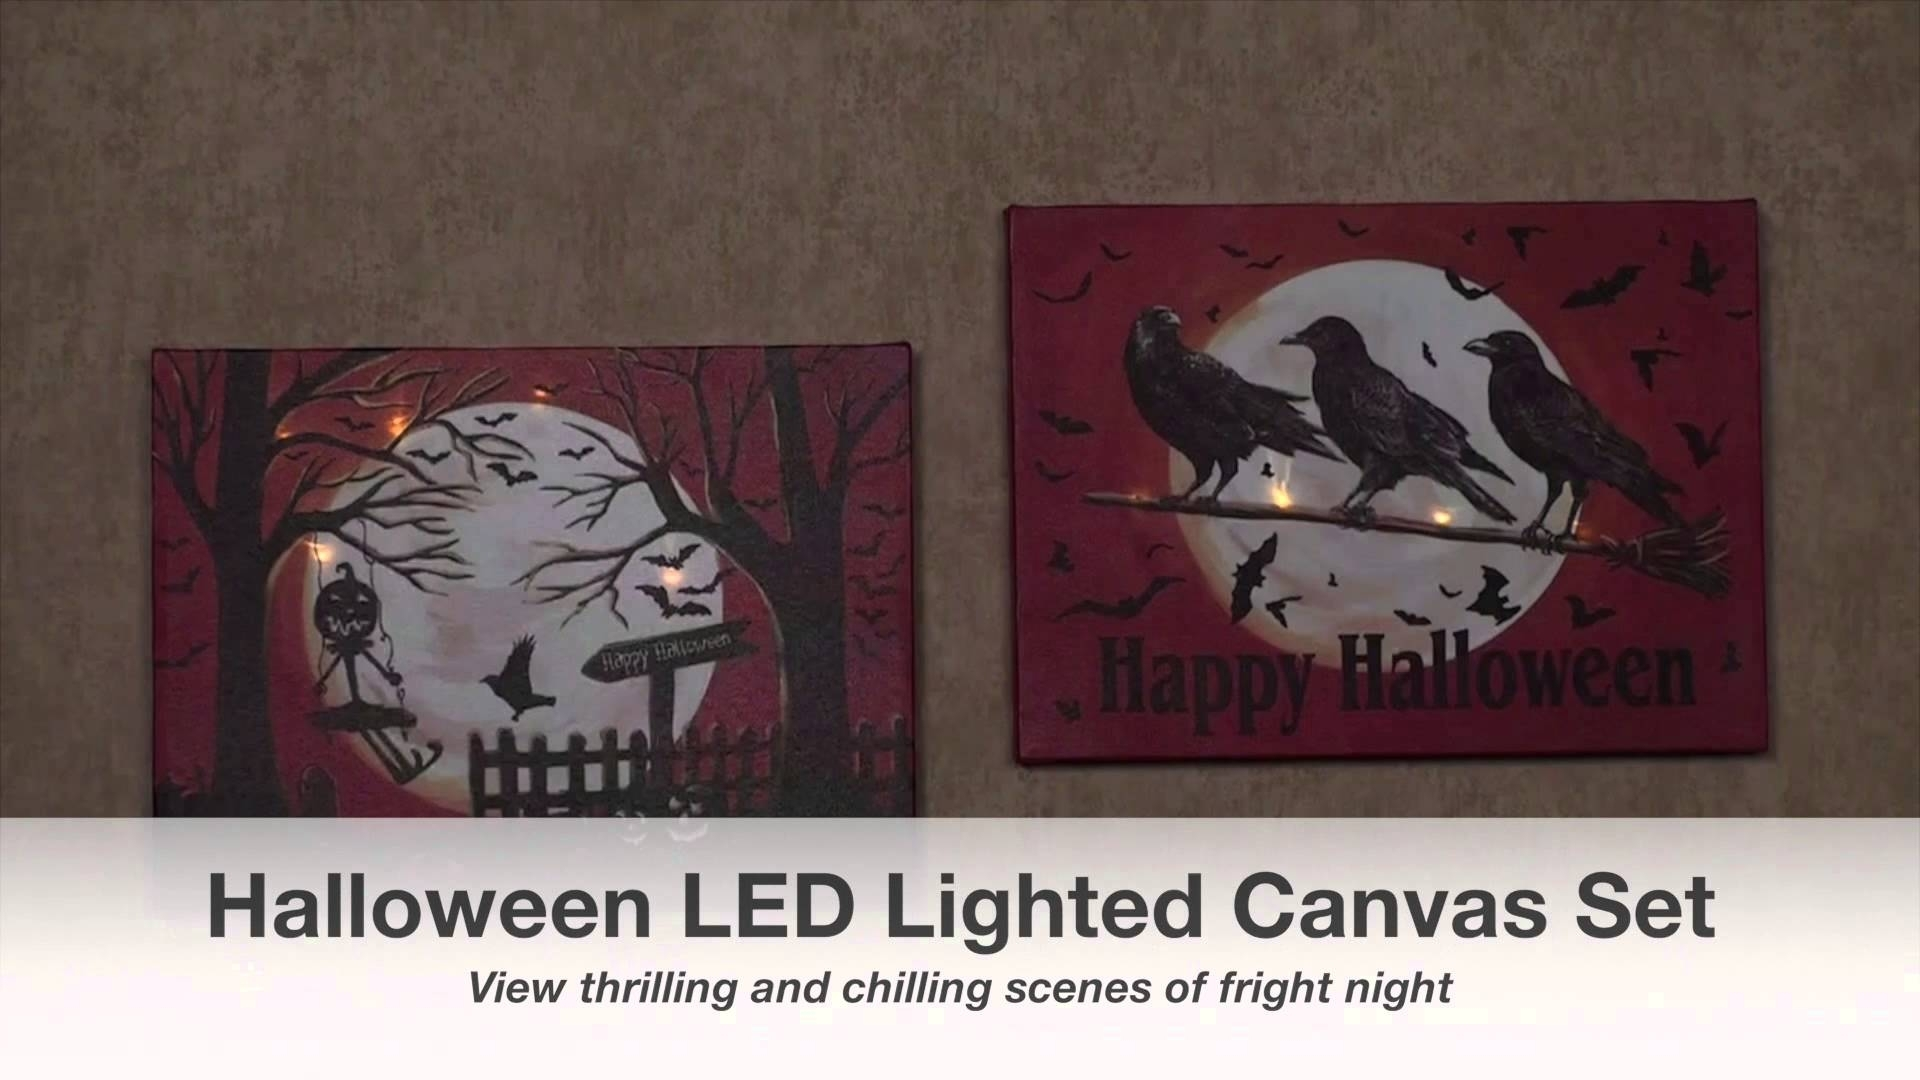 Halloween Night Led Lighted Canvas Wall Art Set – Youtube Intended For Most Current Halloween Led Canvas Wall Art (View 5 of 15)